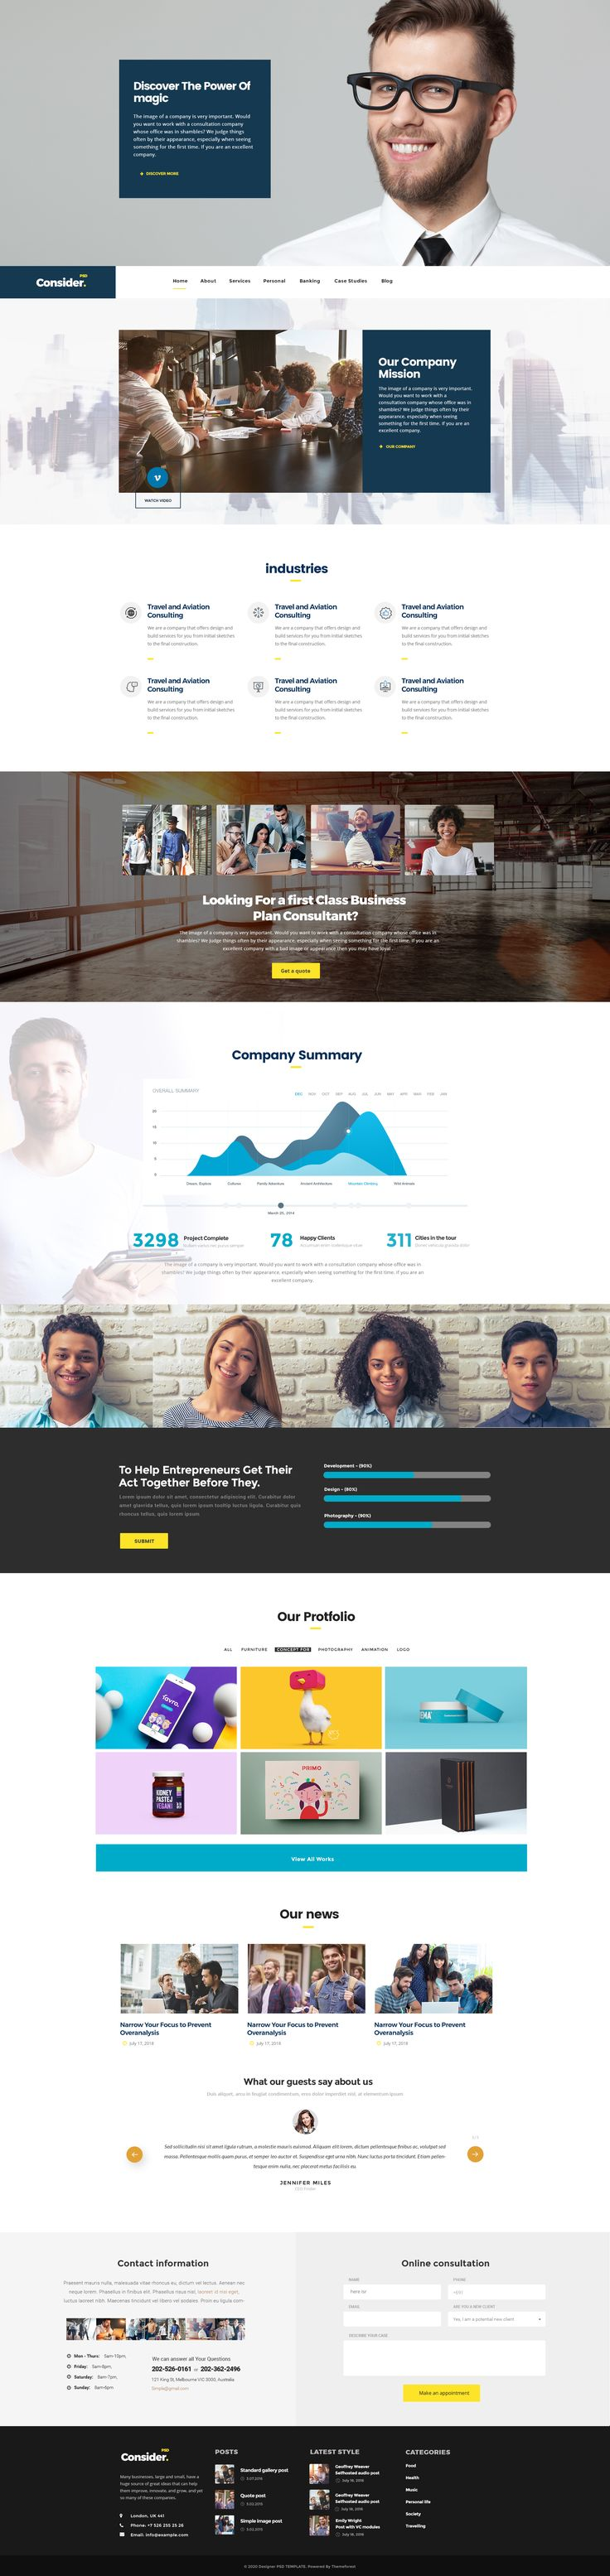 Consider - Consulting,Finance, Business Agency PSD Template #advisor #analytical #audit • Download ➝ https://themeforest.net/item/consider-consultingfinance-business-agency-psd-template/20377155?ref=pxcr  - No site #ThemeForest encontra os melhores #Templates & #Plugins para #Wordpress. Confira em http://www.estrategiadigital.pt/themeforest-templates-wordpress/  - No site #ThemeForest encontra os melhores #Templates & #Plugins para #Wordpress. Confira em…